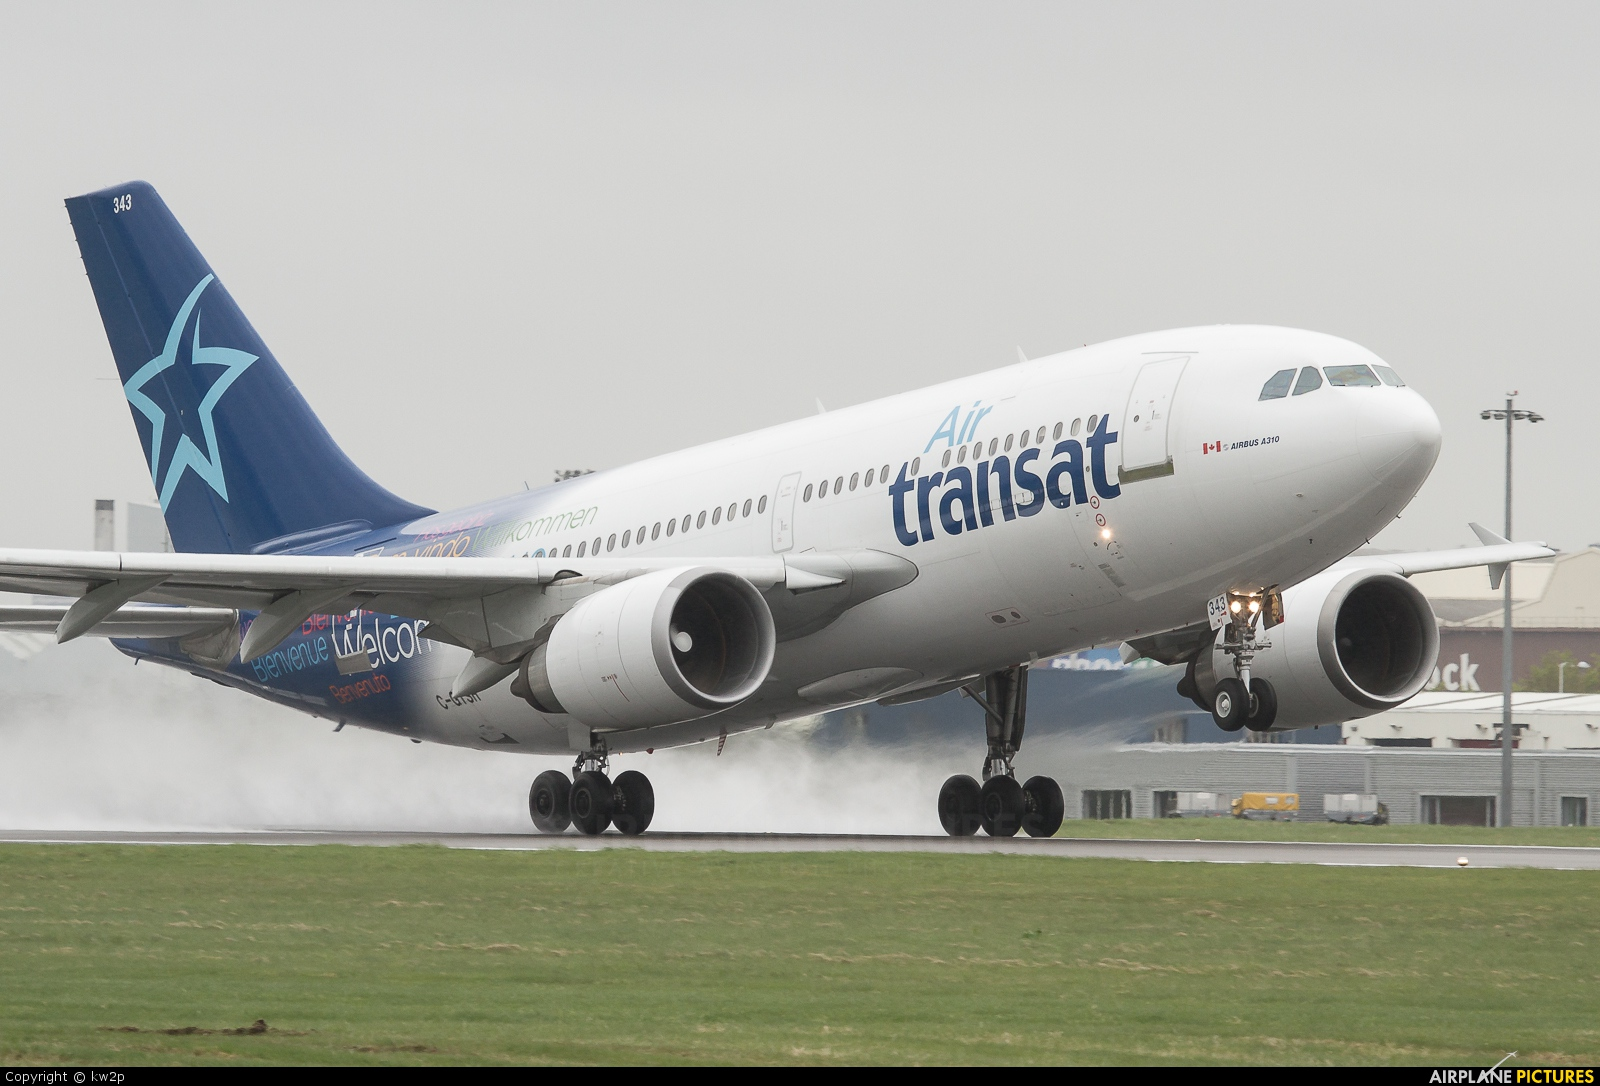 c gtsh air transat airbus a310 at glasgow photo id 289460 airplane pictures net